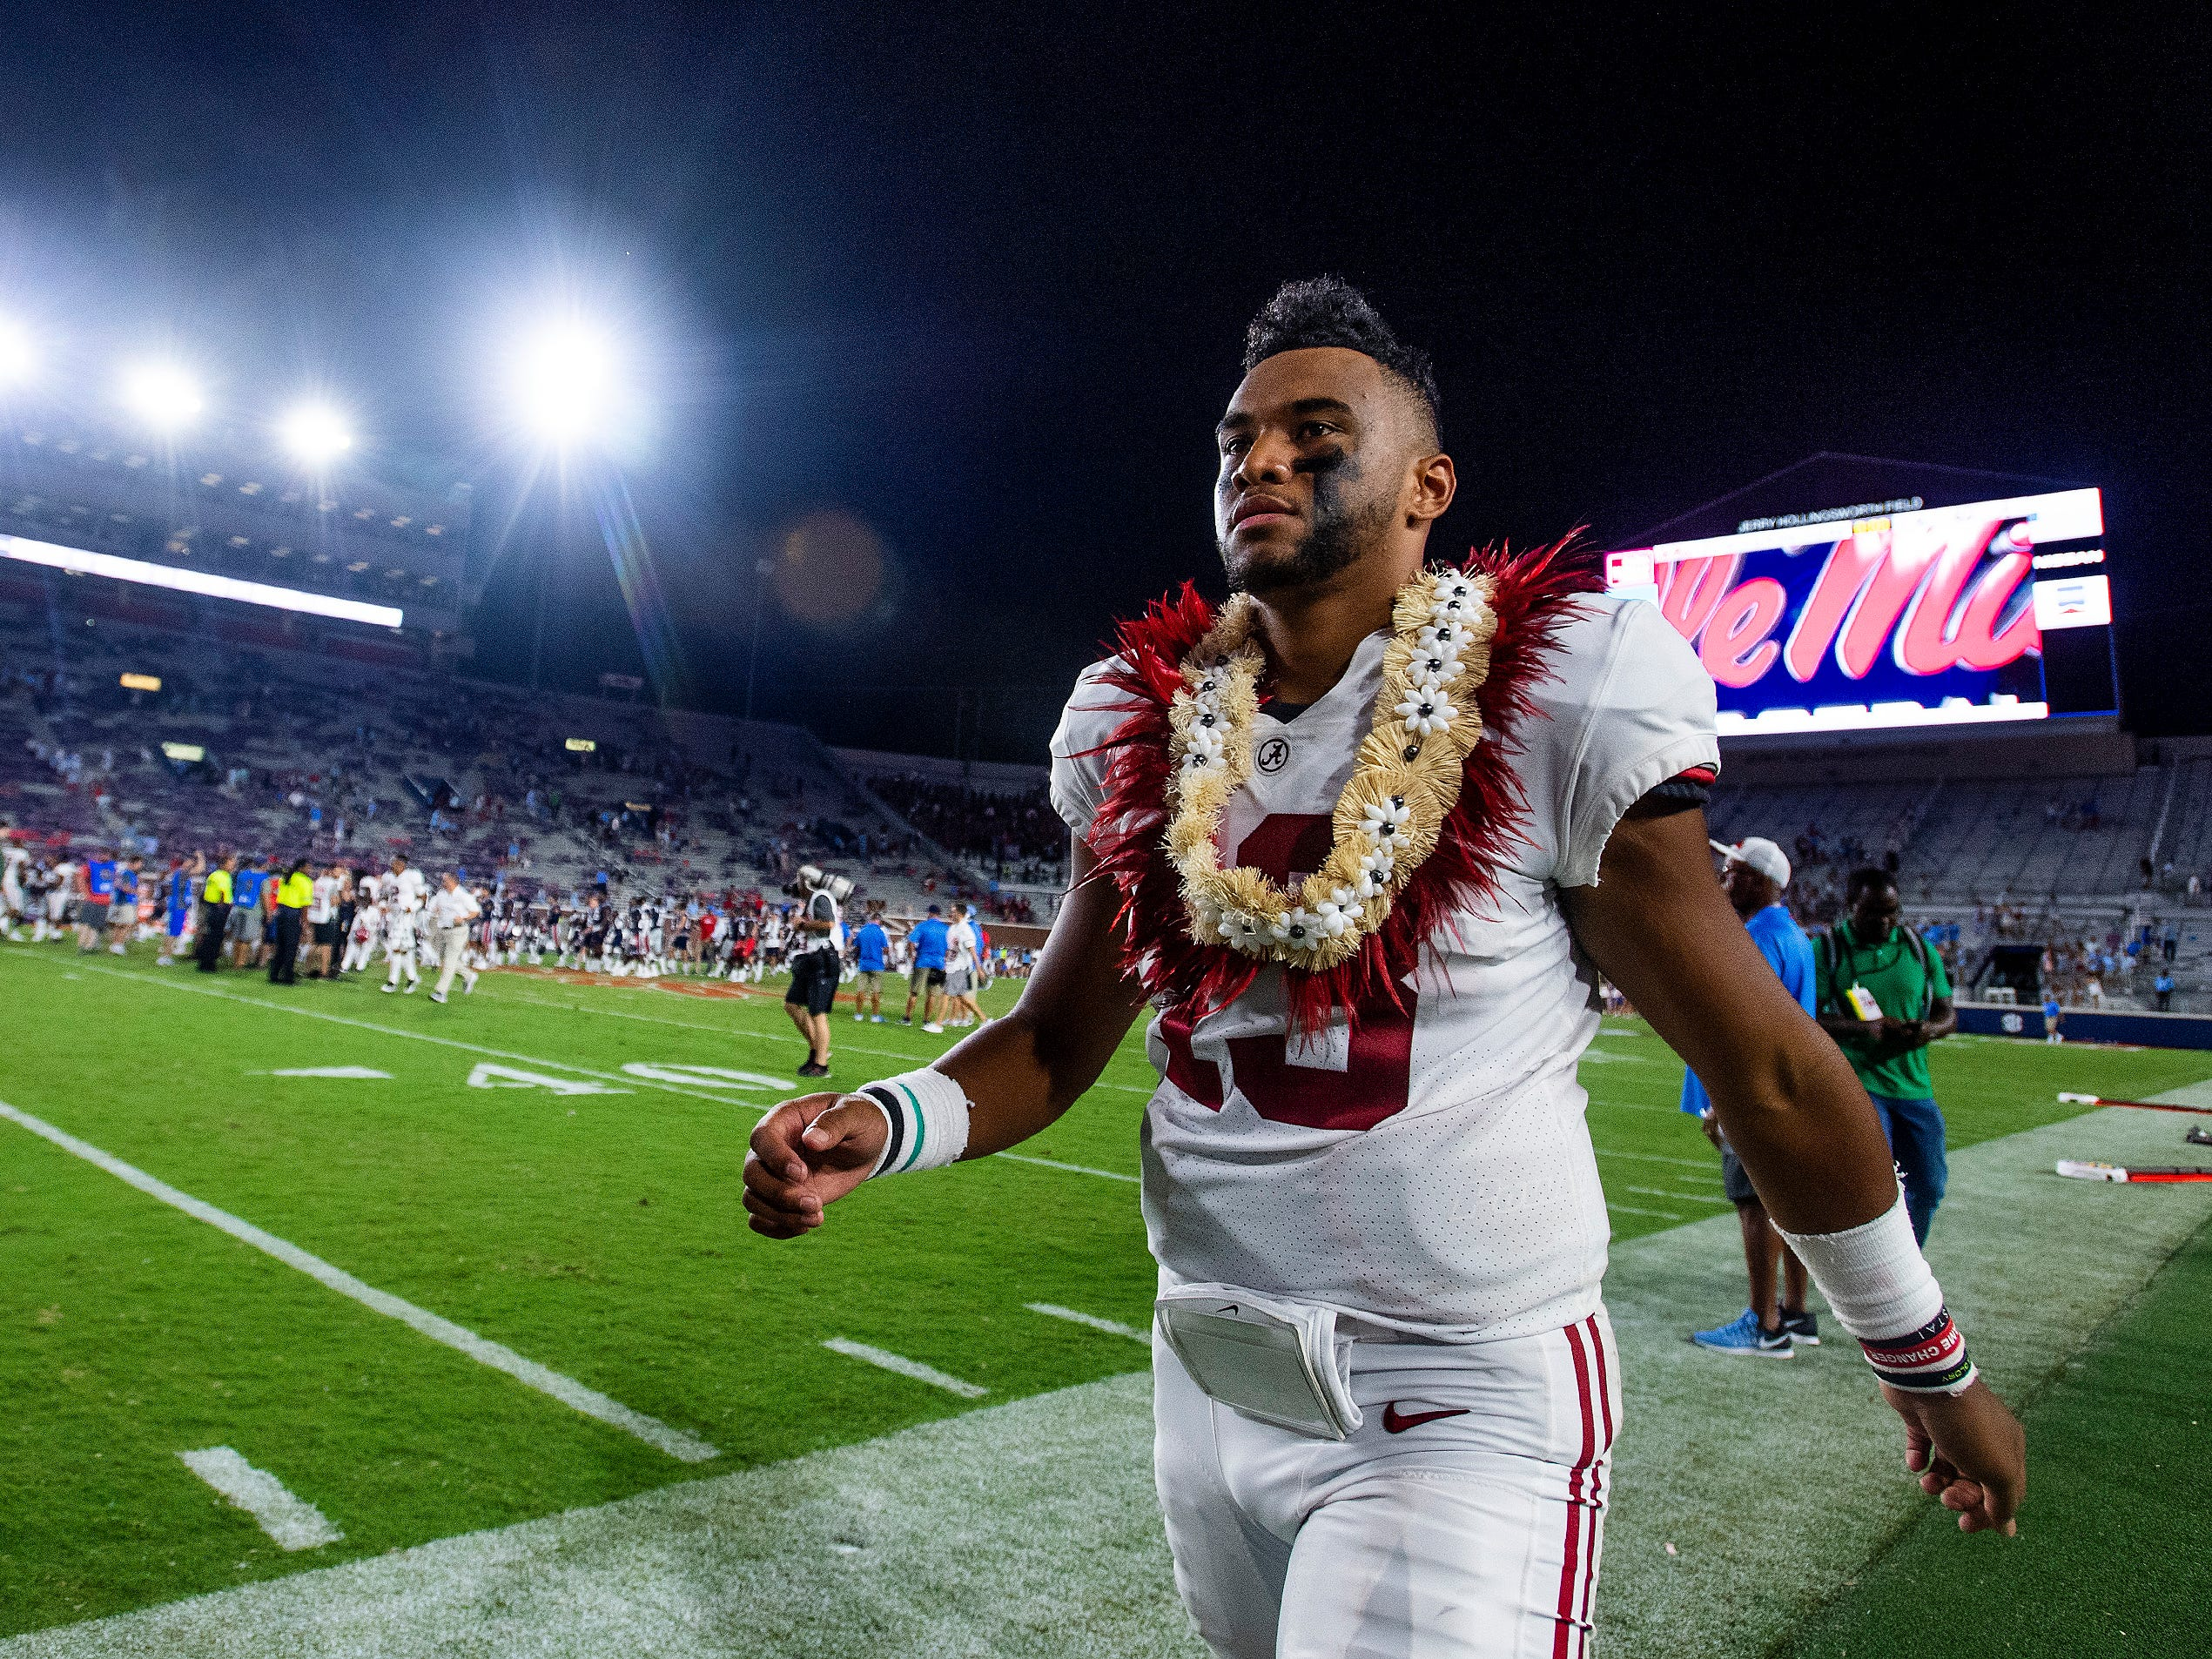 Alabama quarterback Tua Tagovailoa (13) wears a lei given to him by his mother Diane Tagovailoa after Alabama defeated Ole Miss in Oxford, Ms., on Saturday September 15, 2018.